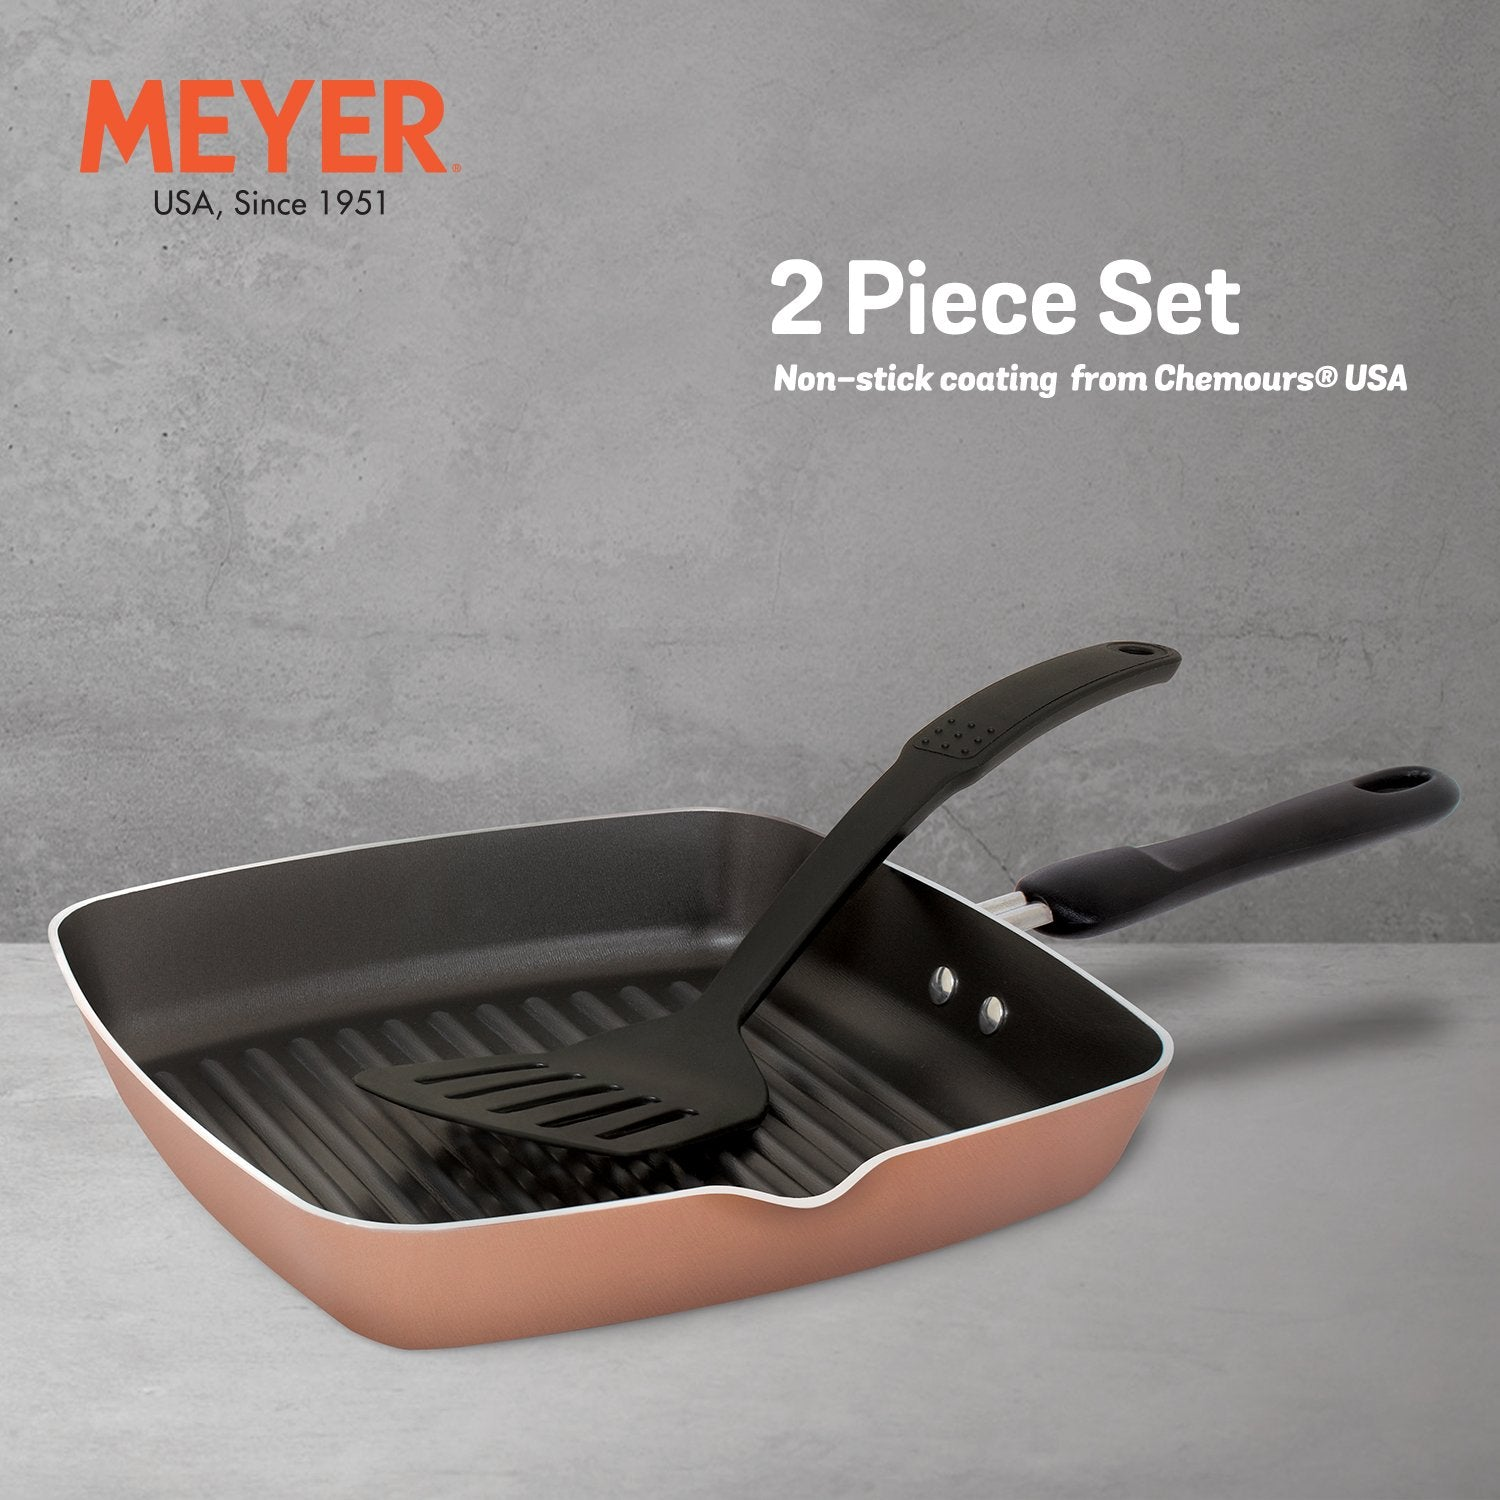 Meyer Non-Stick 2pcs Set, Grillpan with Accessory (Suitable For Gas & Electric Cooktops) - Pots and Pans